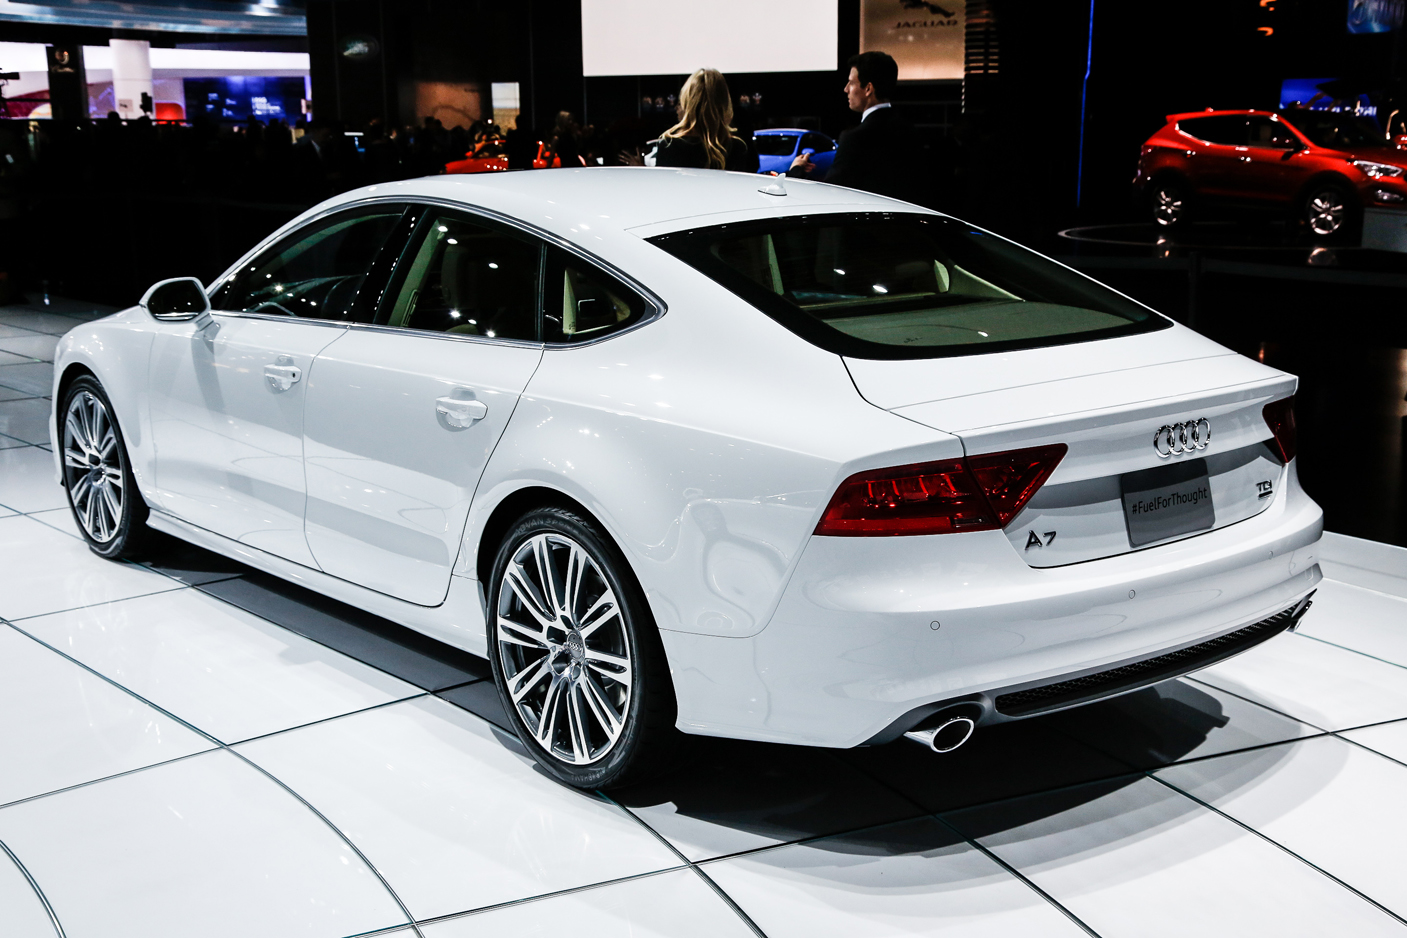 Audi A4 White 2014 I was hesitant in buying my